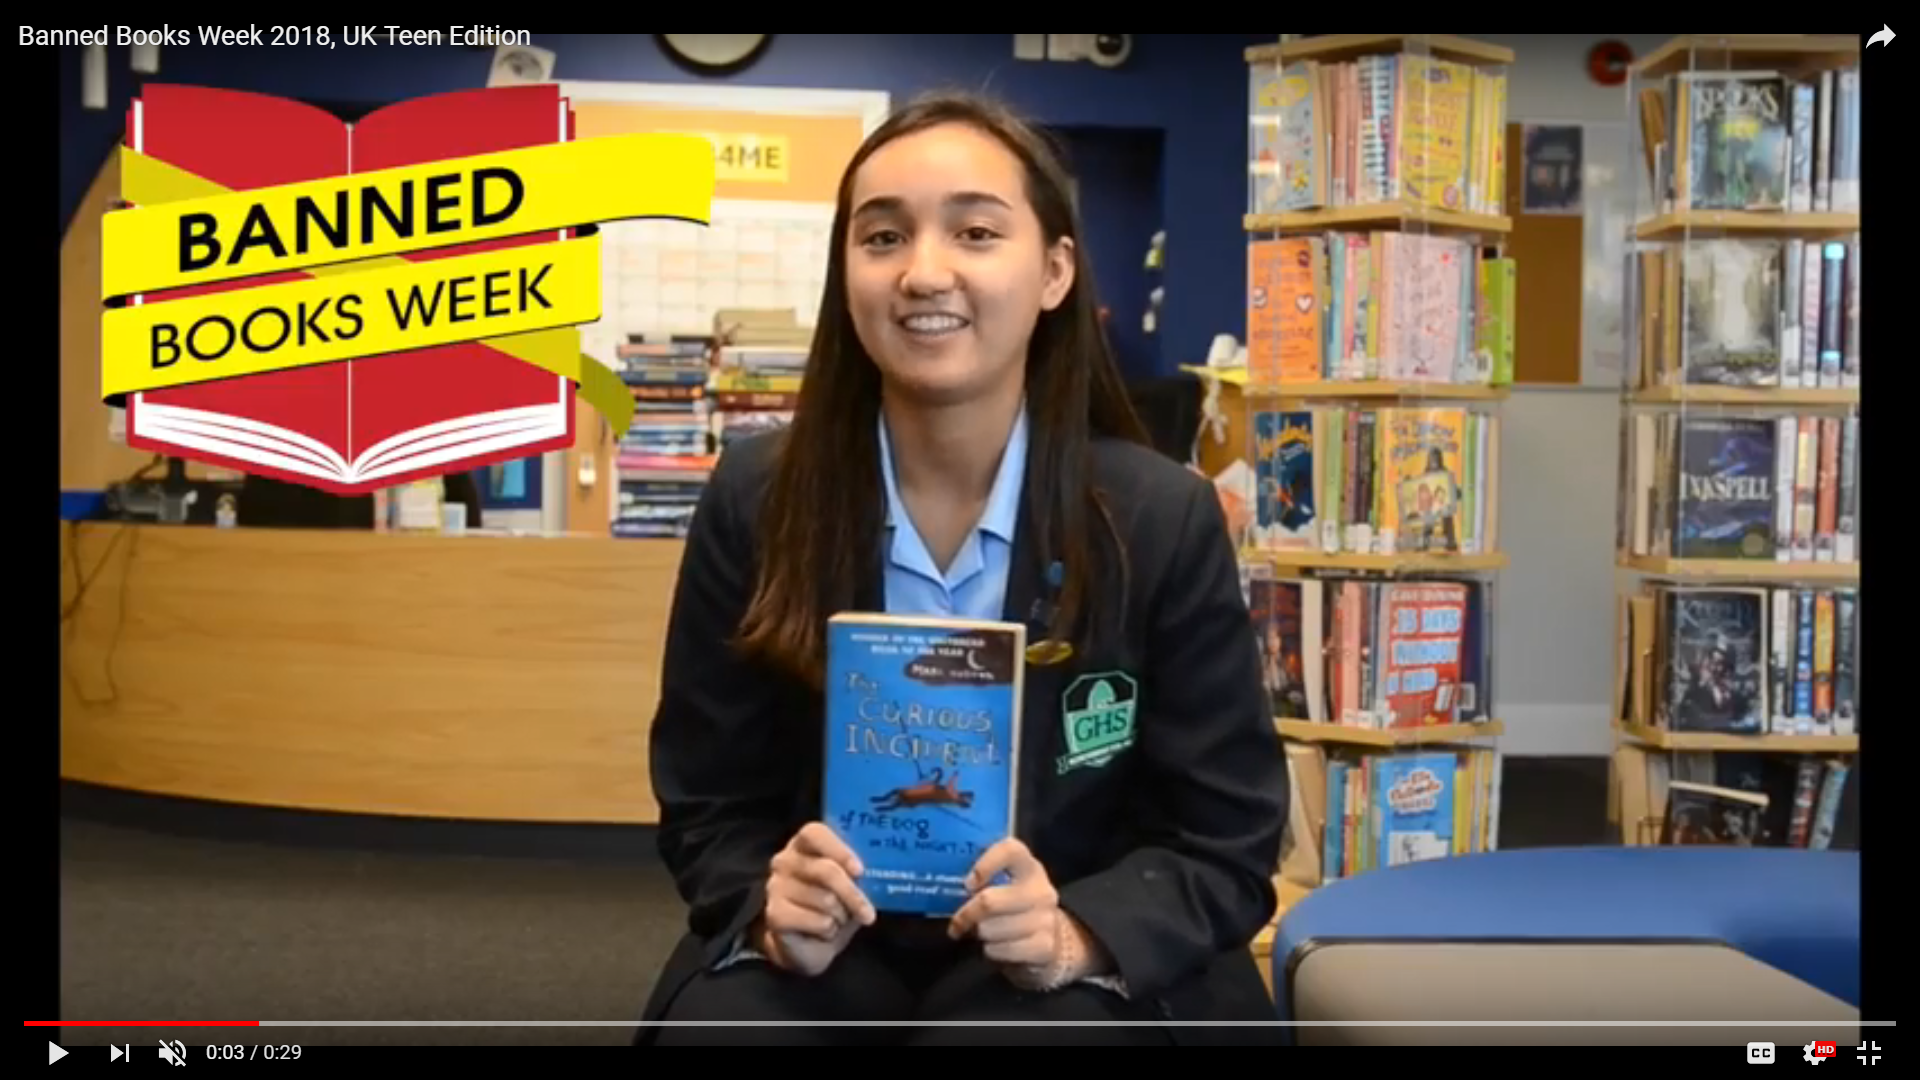 Watch: Banned Books Week 2018, UK Teen Edition